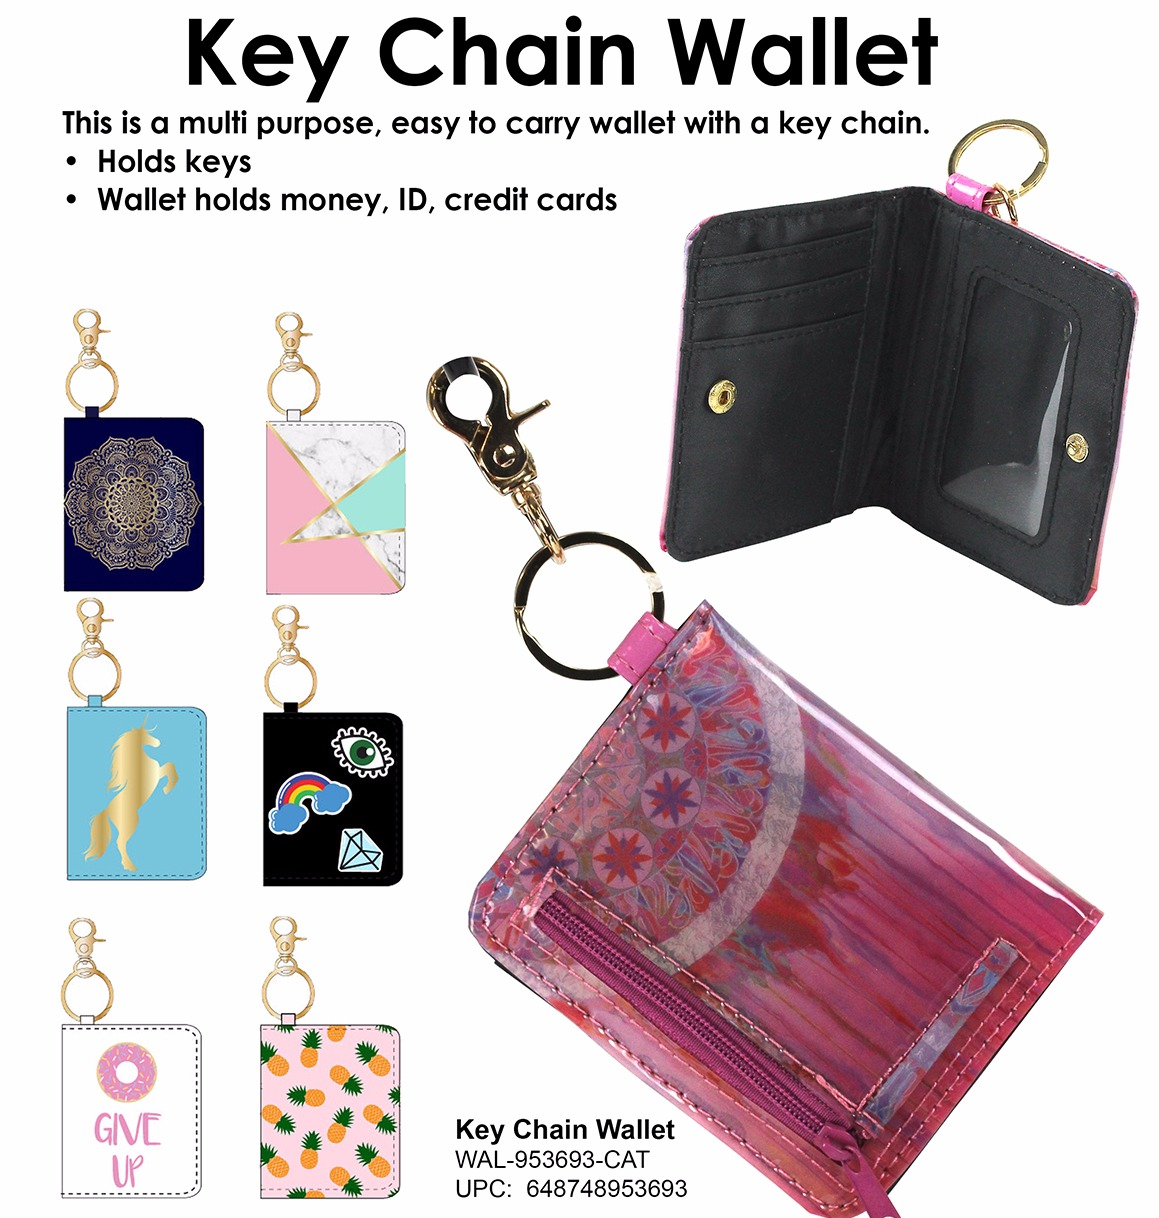 Key Chain Wallet _edited